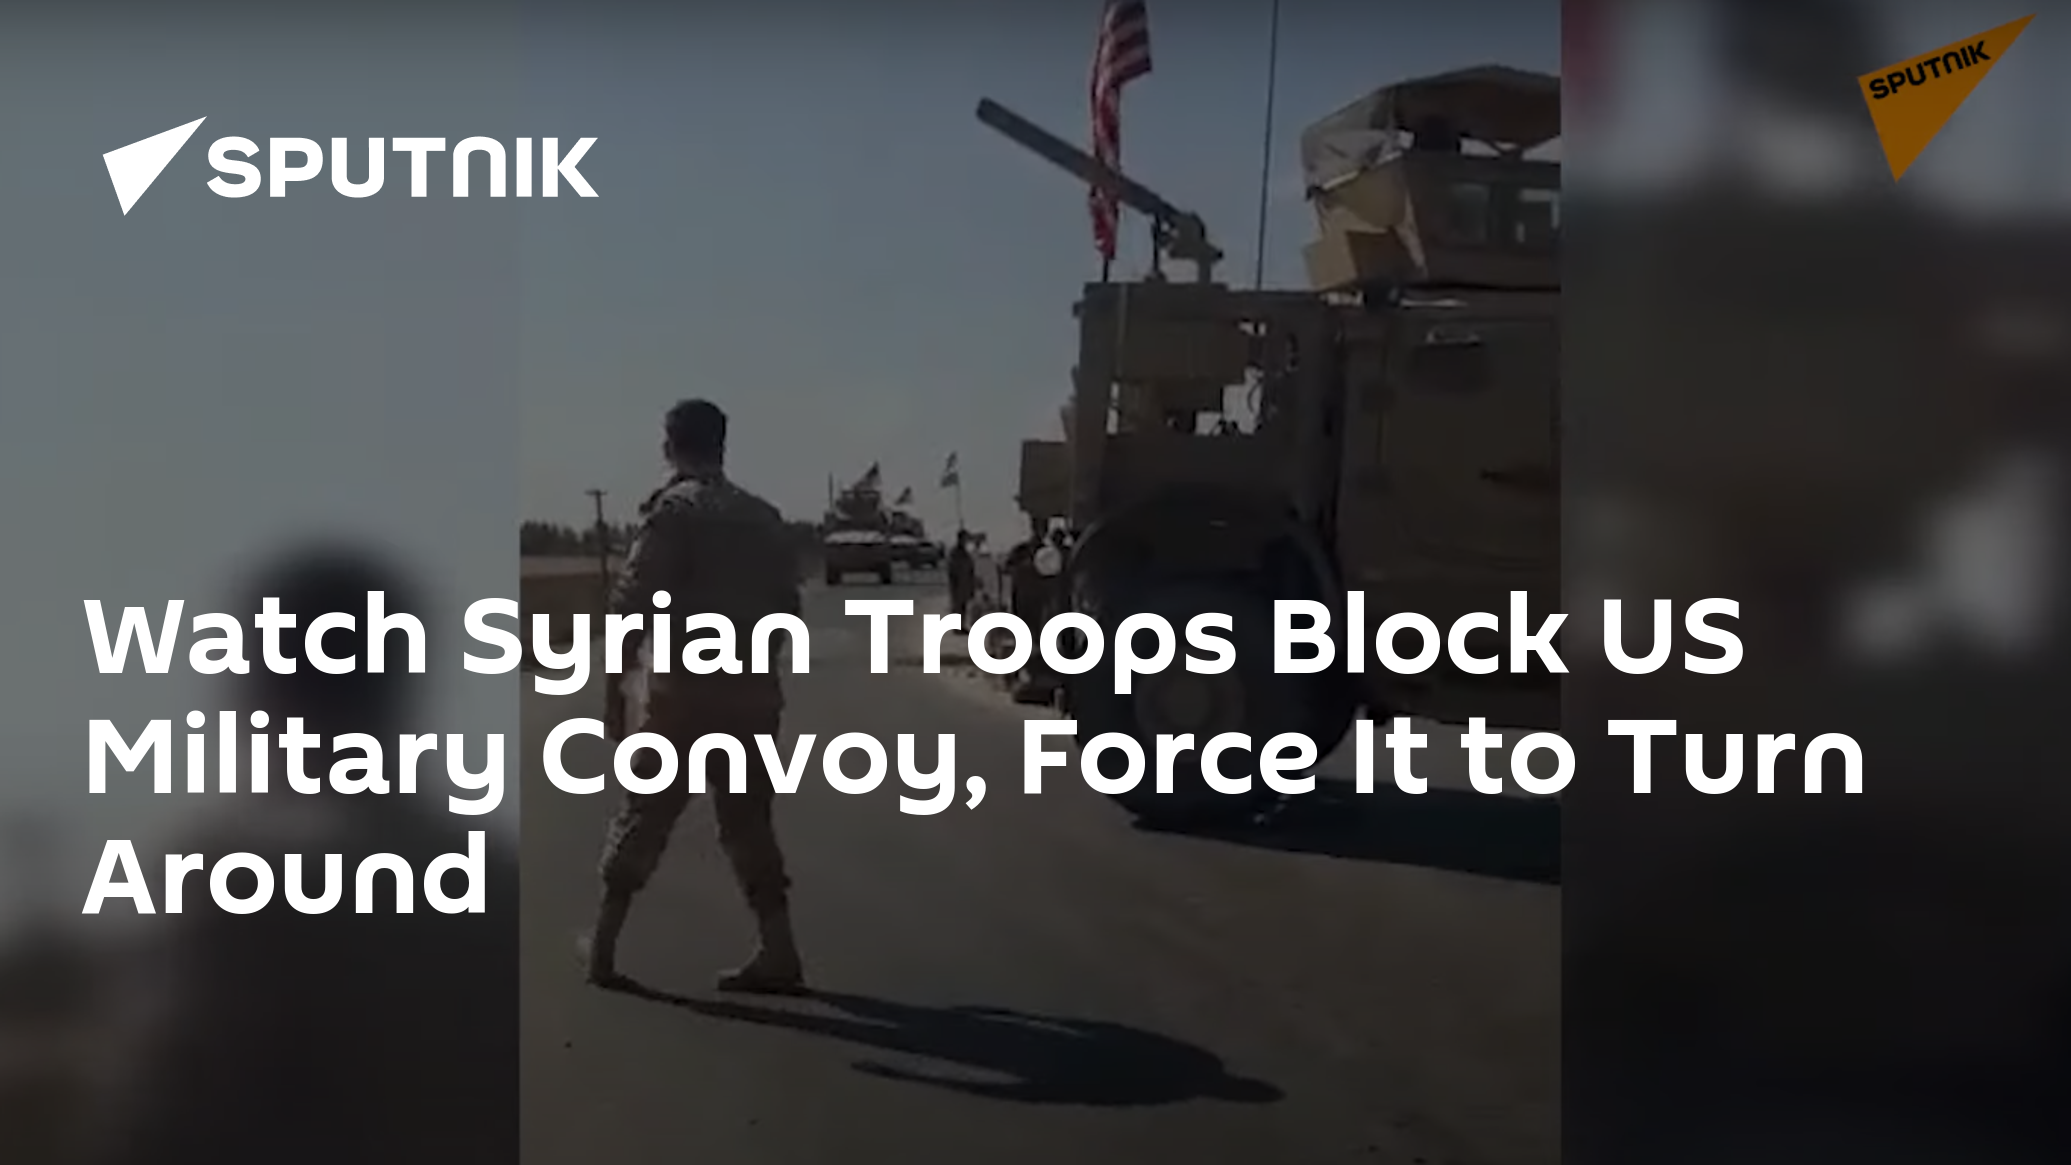 Watch Syrian Troops Block US Military Convoy, Force It to Turn Around